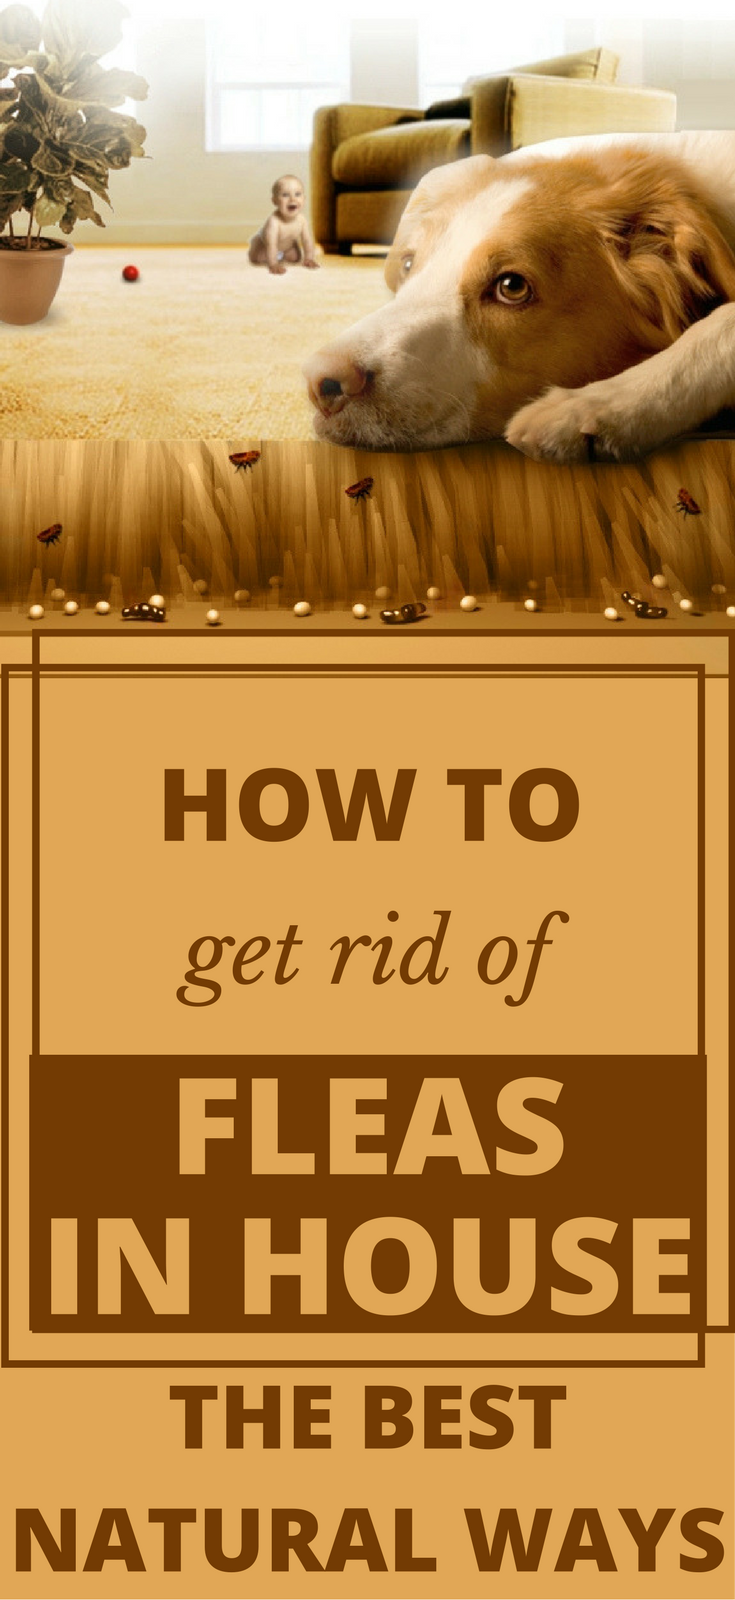 How to get rid of fleas in house the best natural ways house